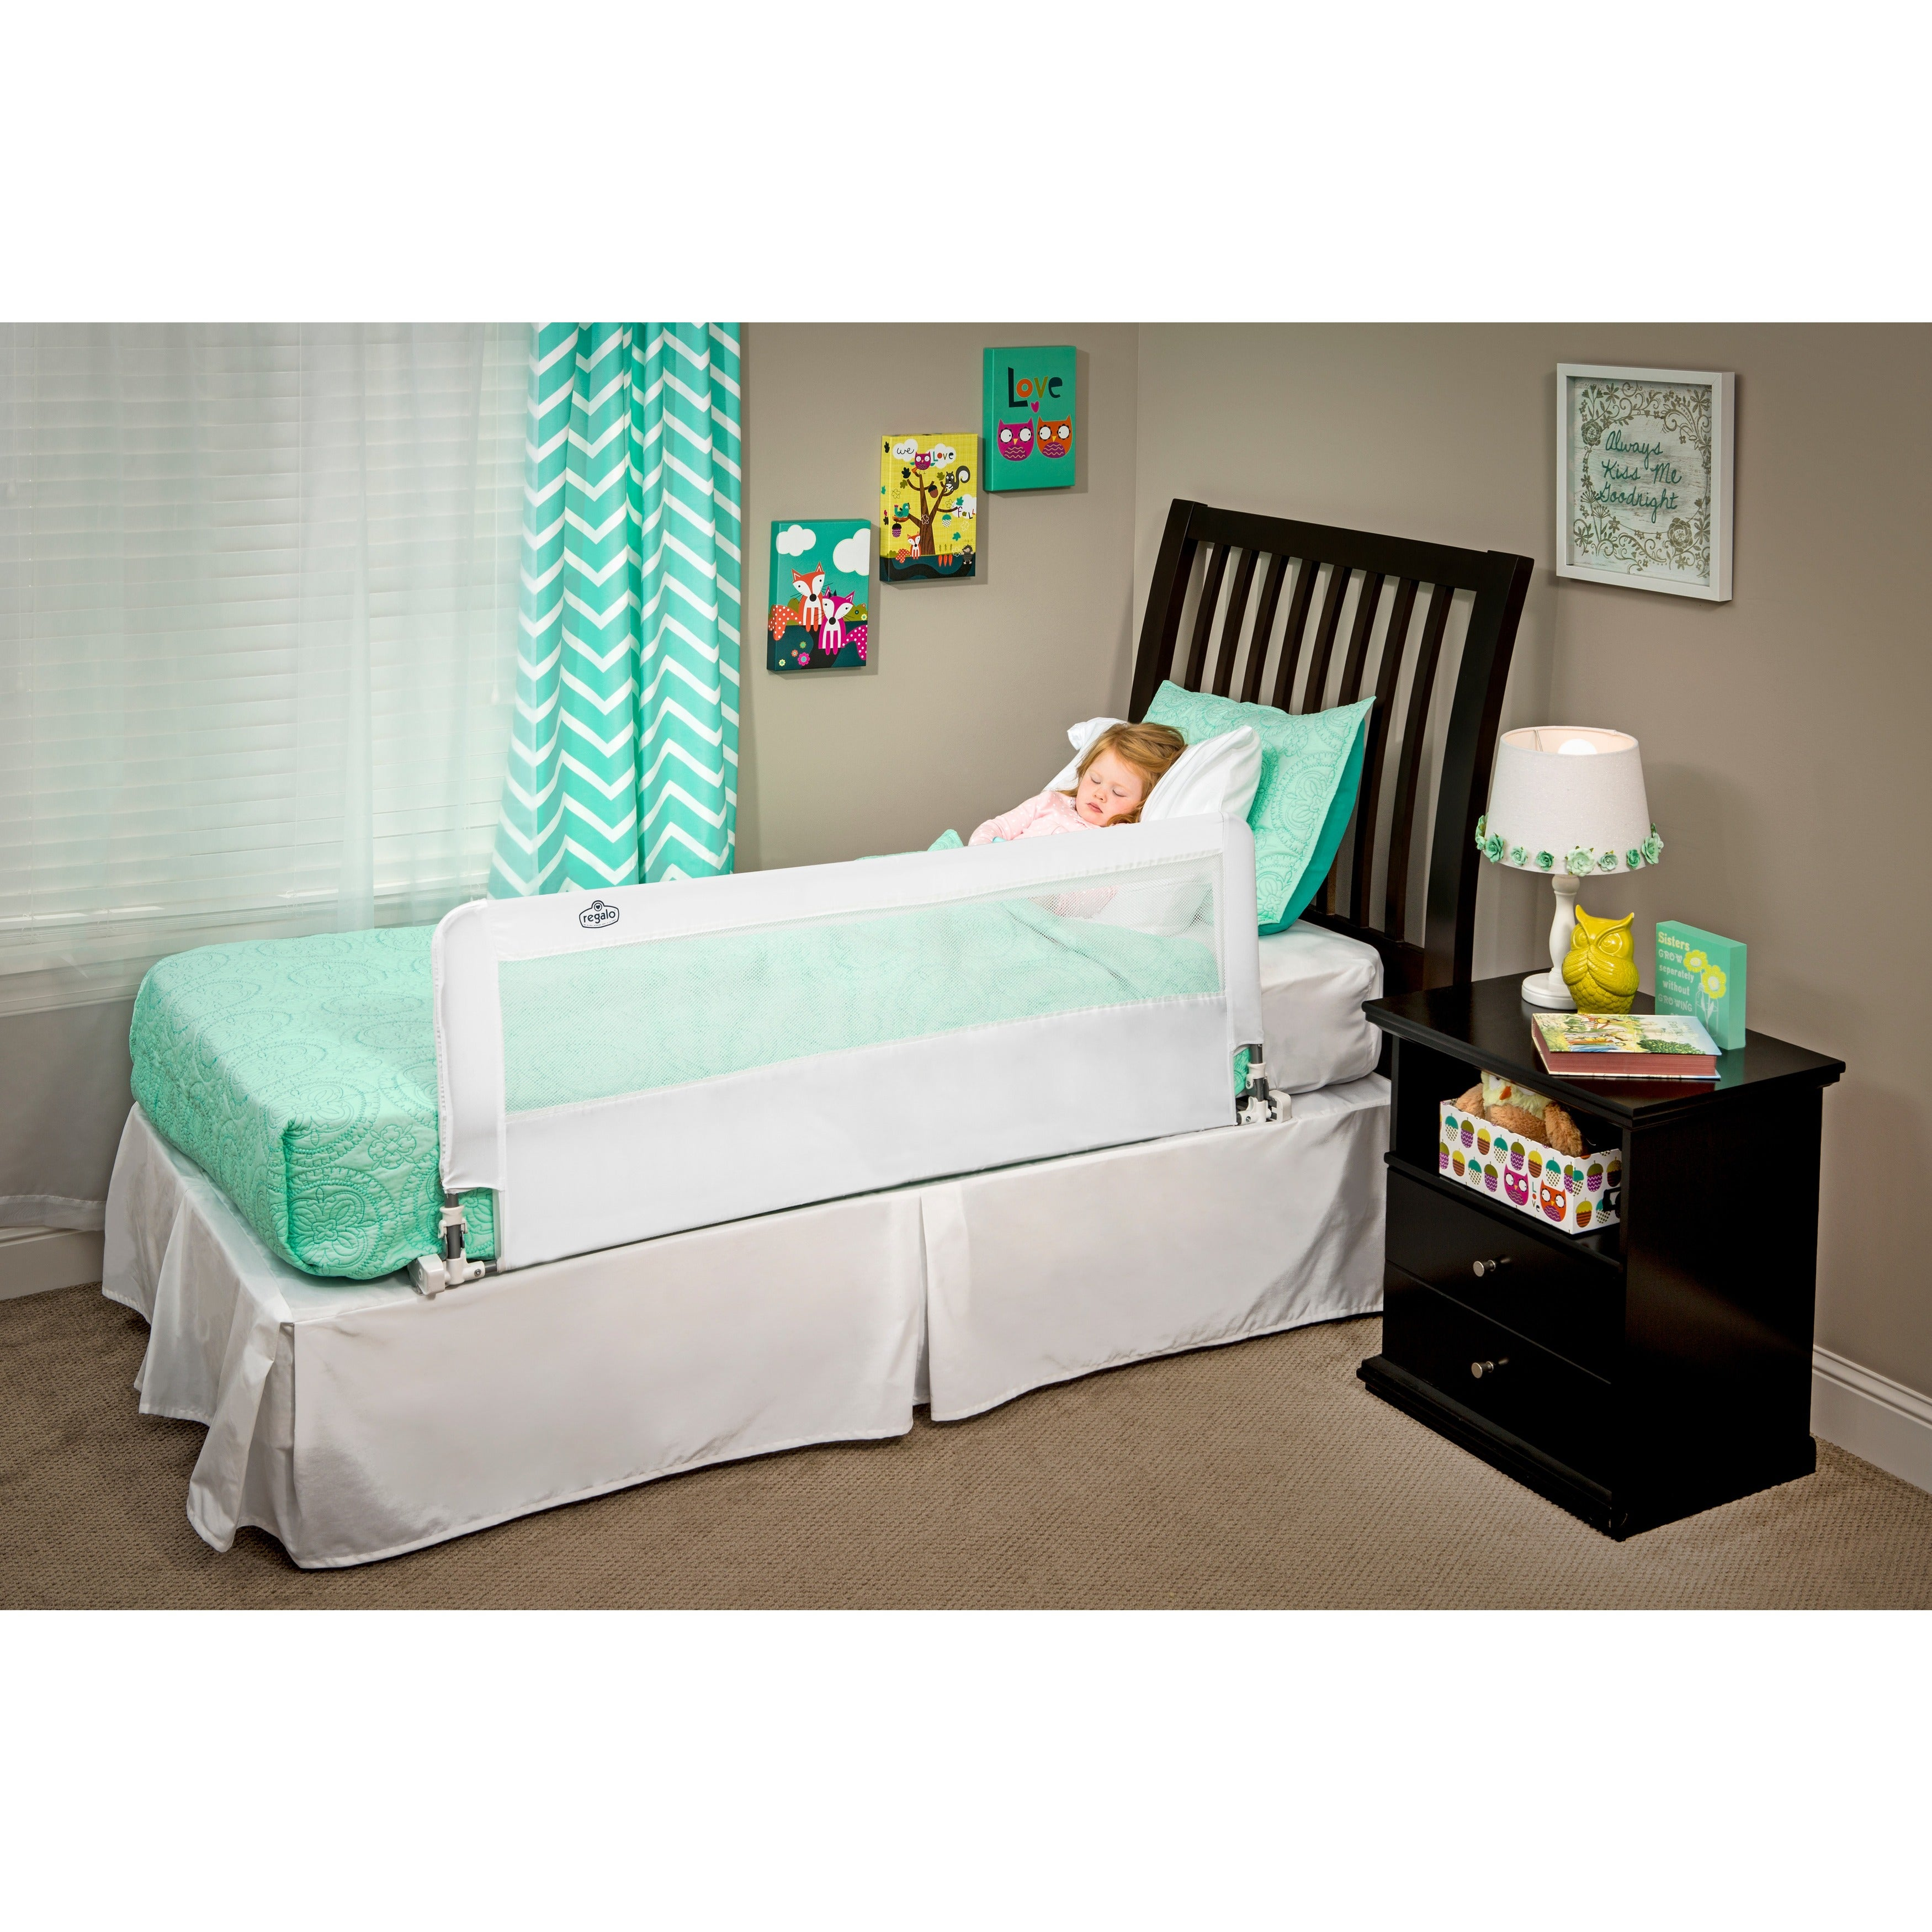 Shop Regalo Hide Away Extra Long Bed Rail Free Shipping On Orders Summer Infant Double Blue Over 45 3515662